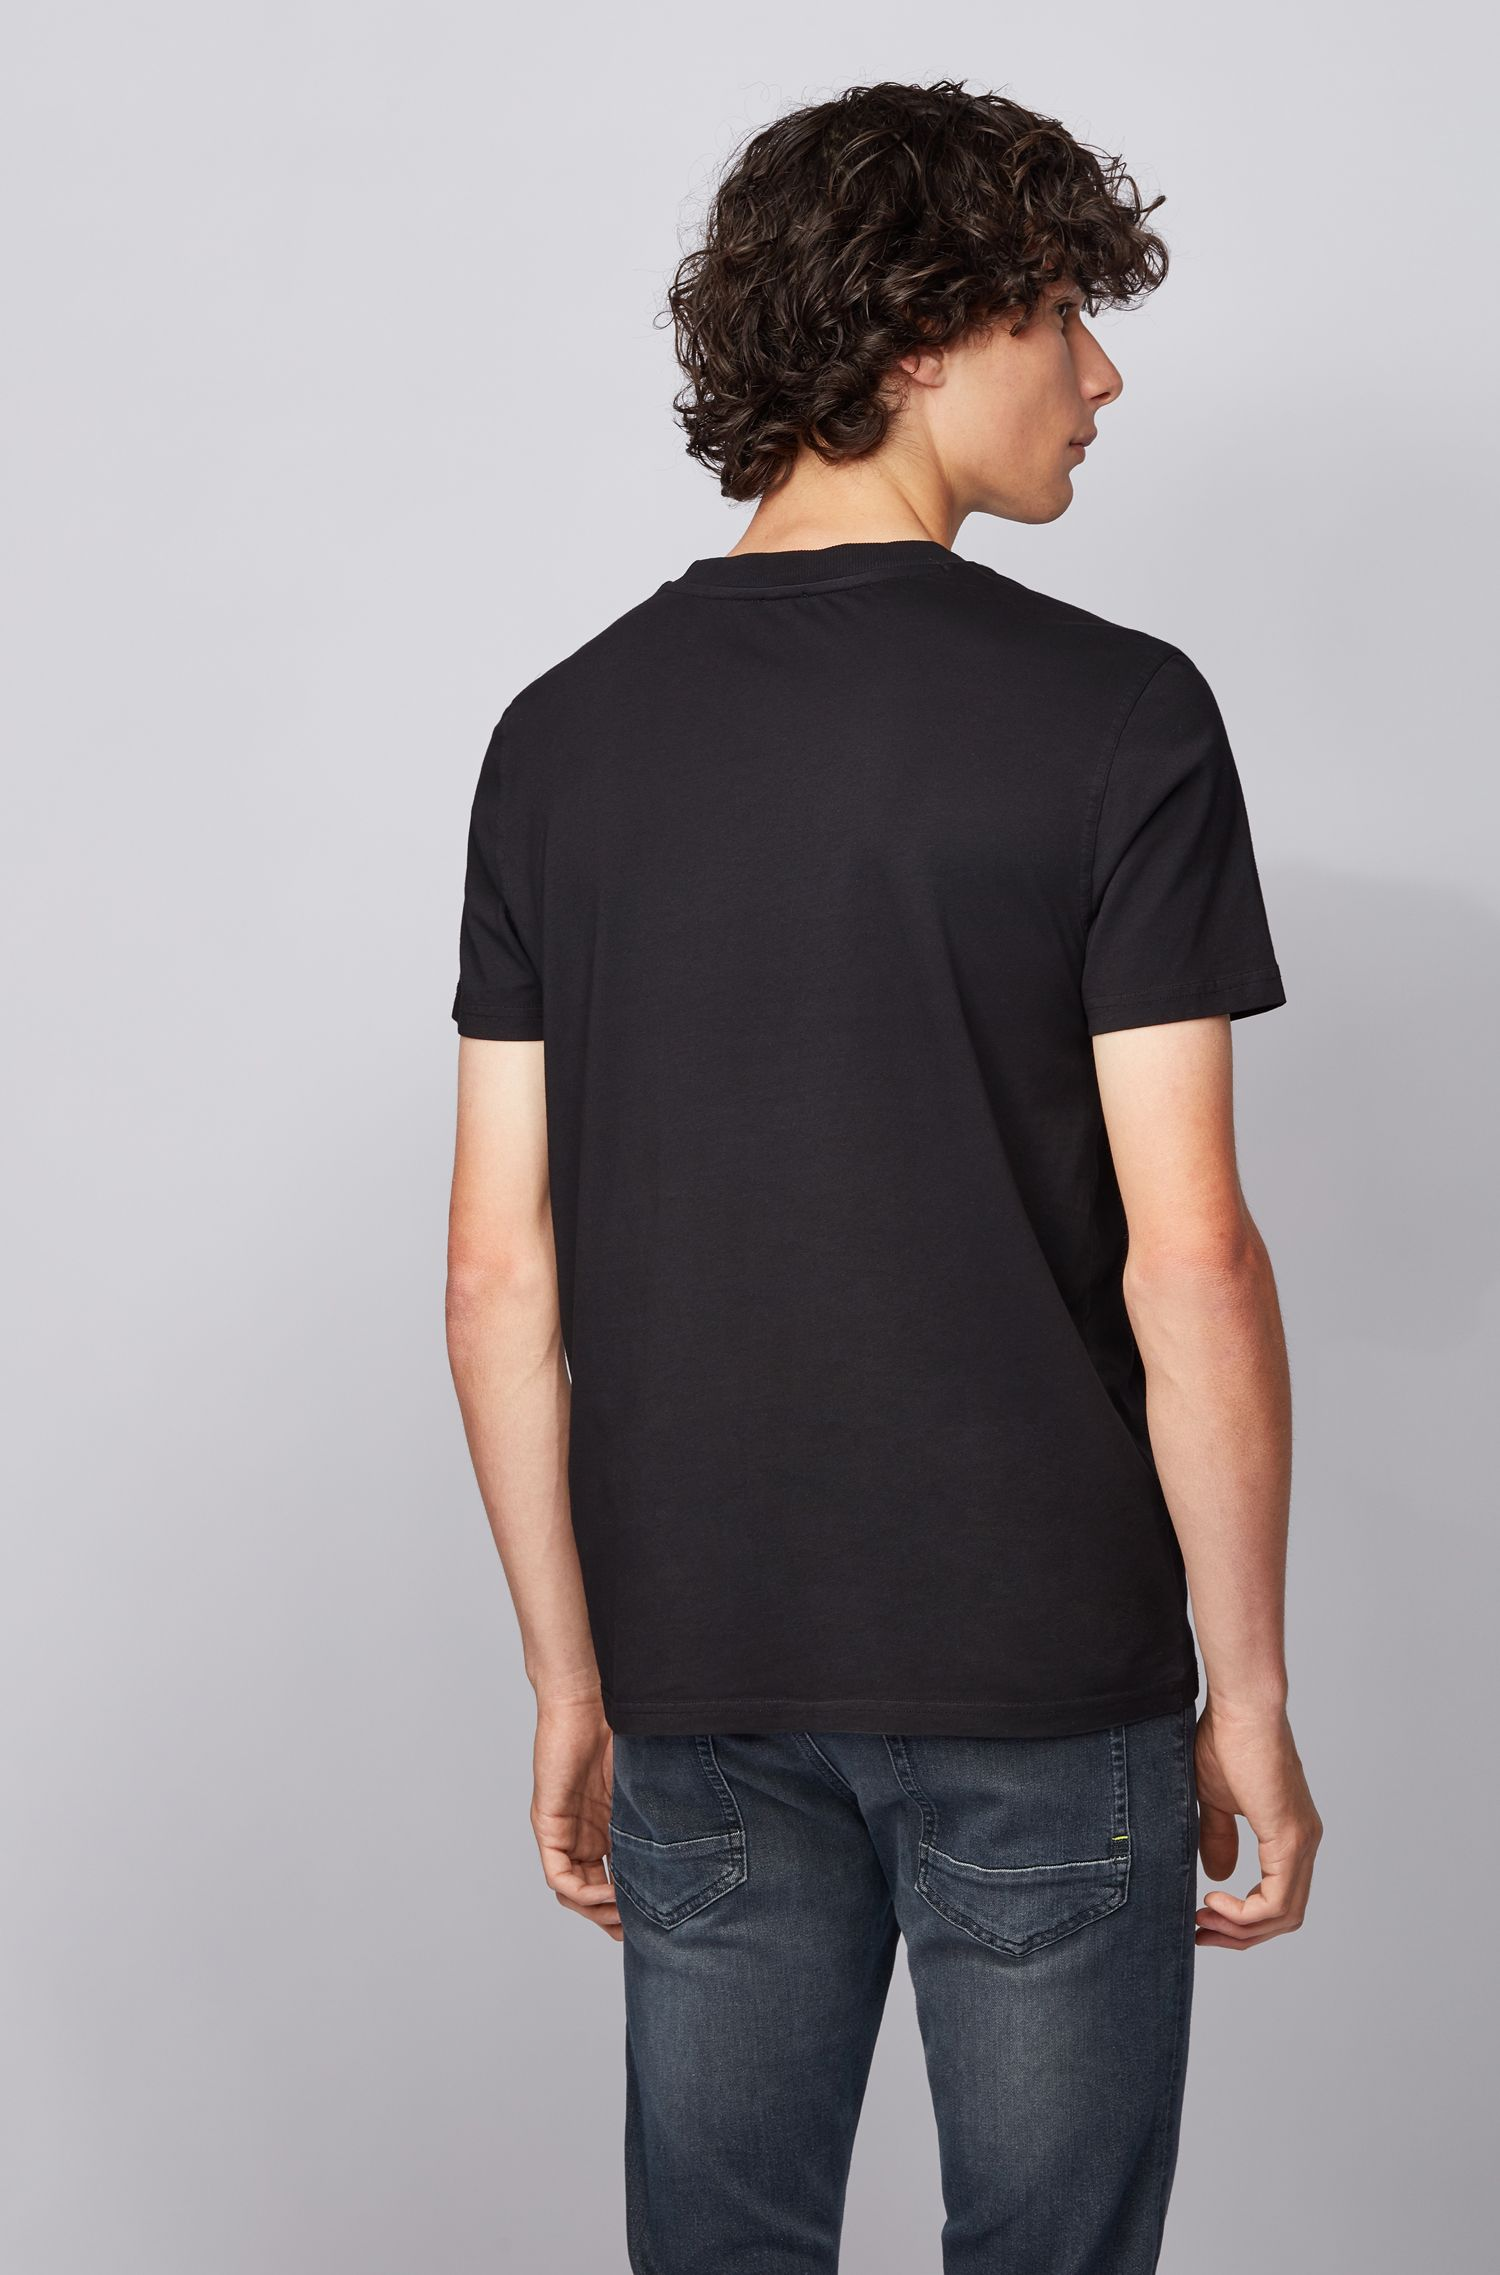 Regular-fit T-shirt in garment-dyed cotton jersey, Black